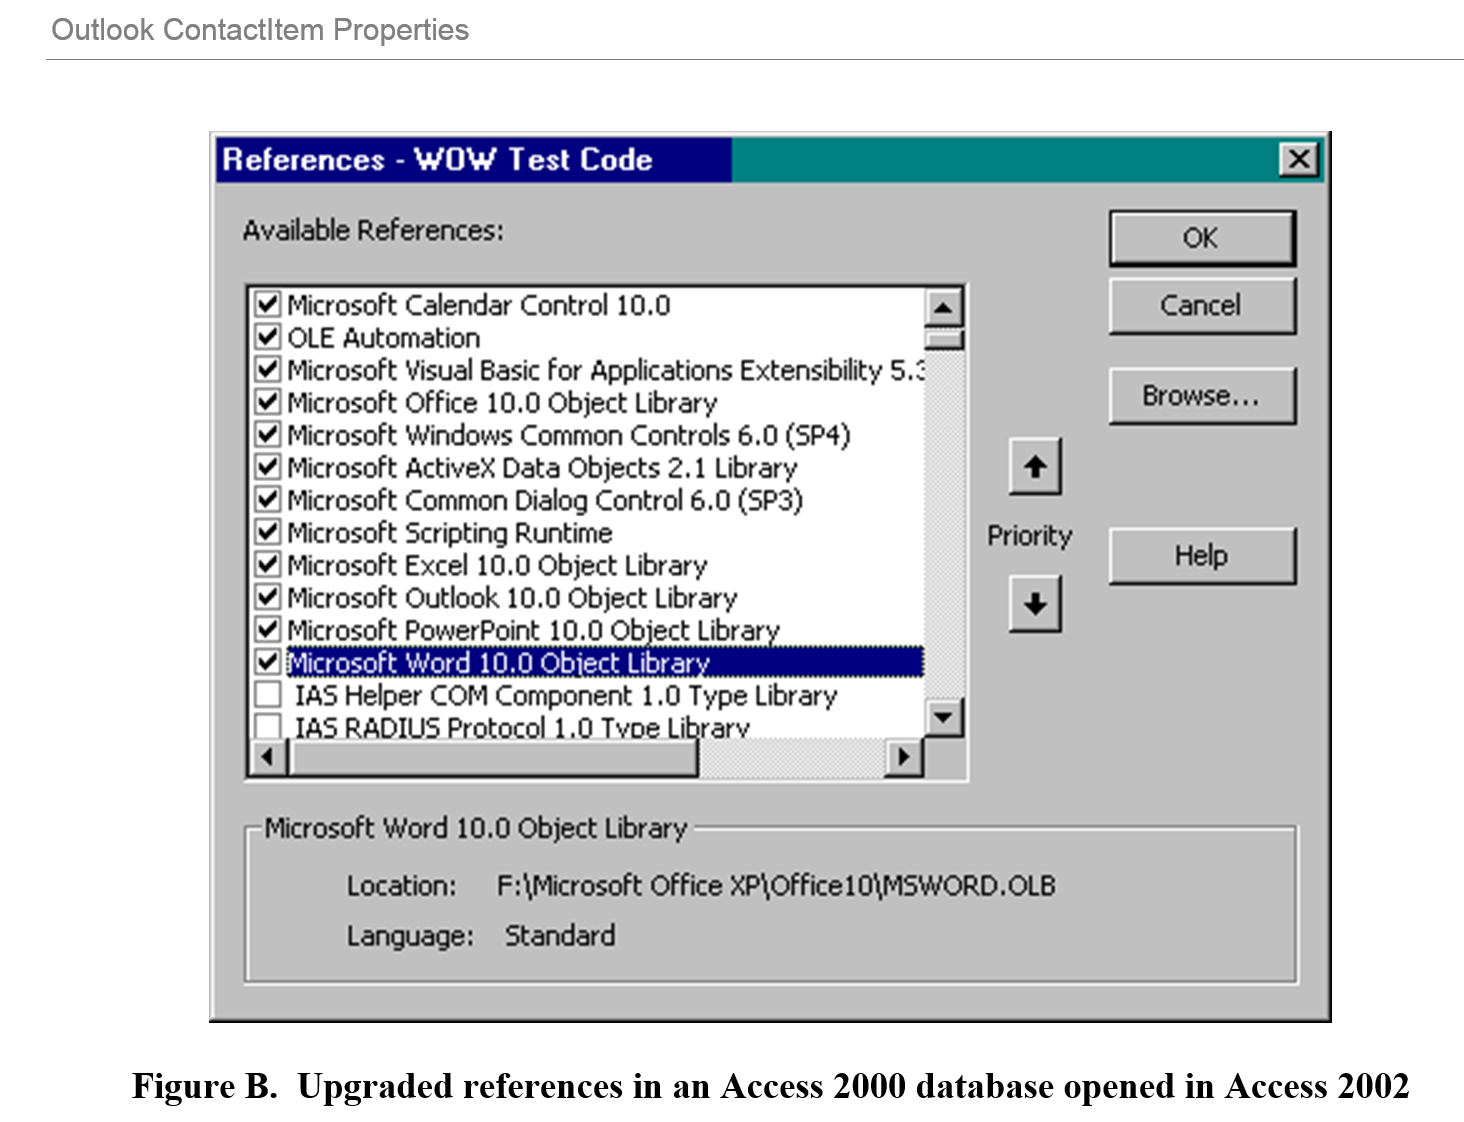 Figure B.  Upgraded references in an Access 2000 database opened in Access 2002